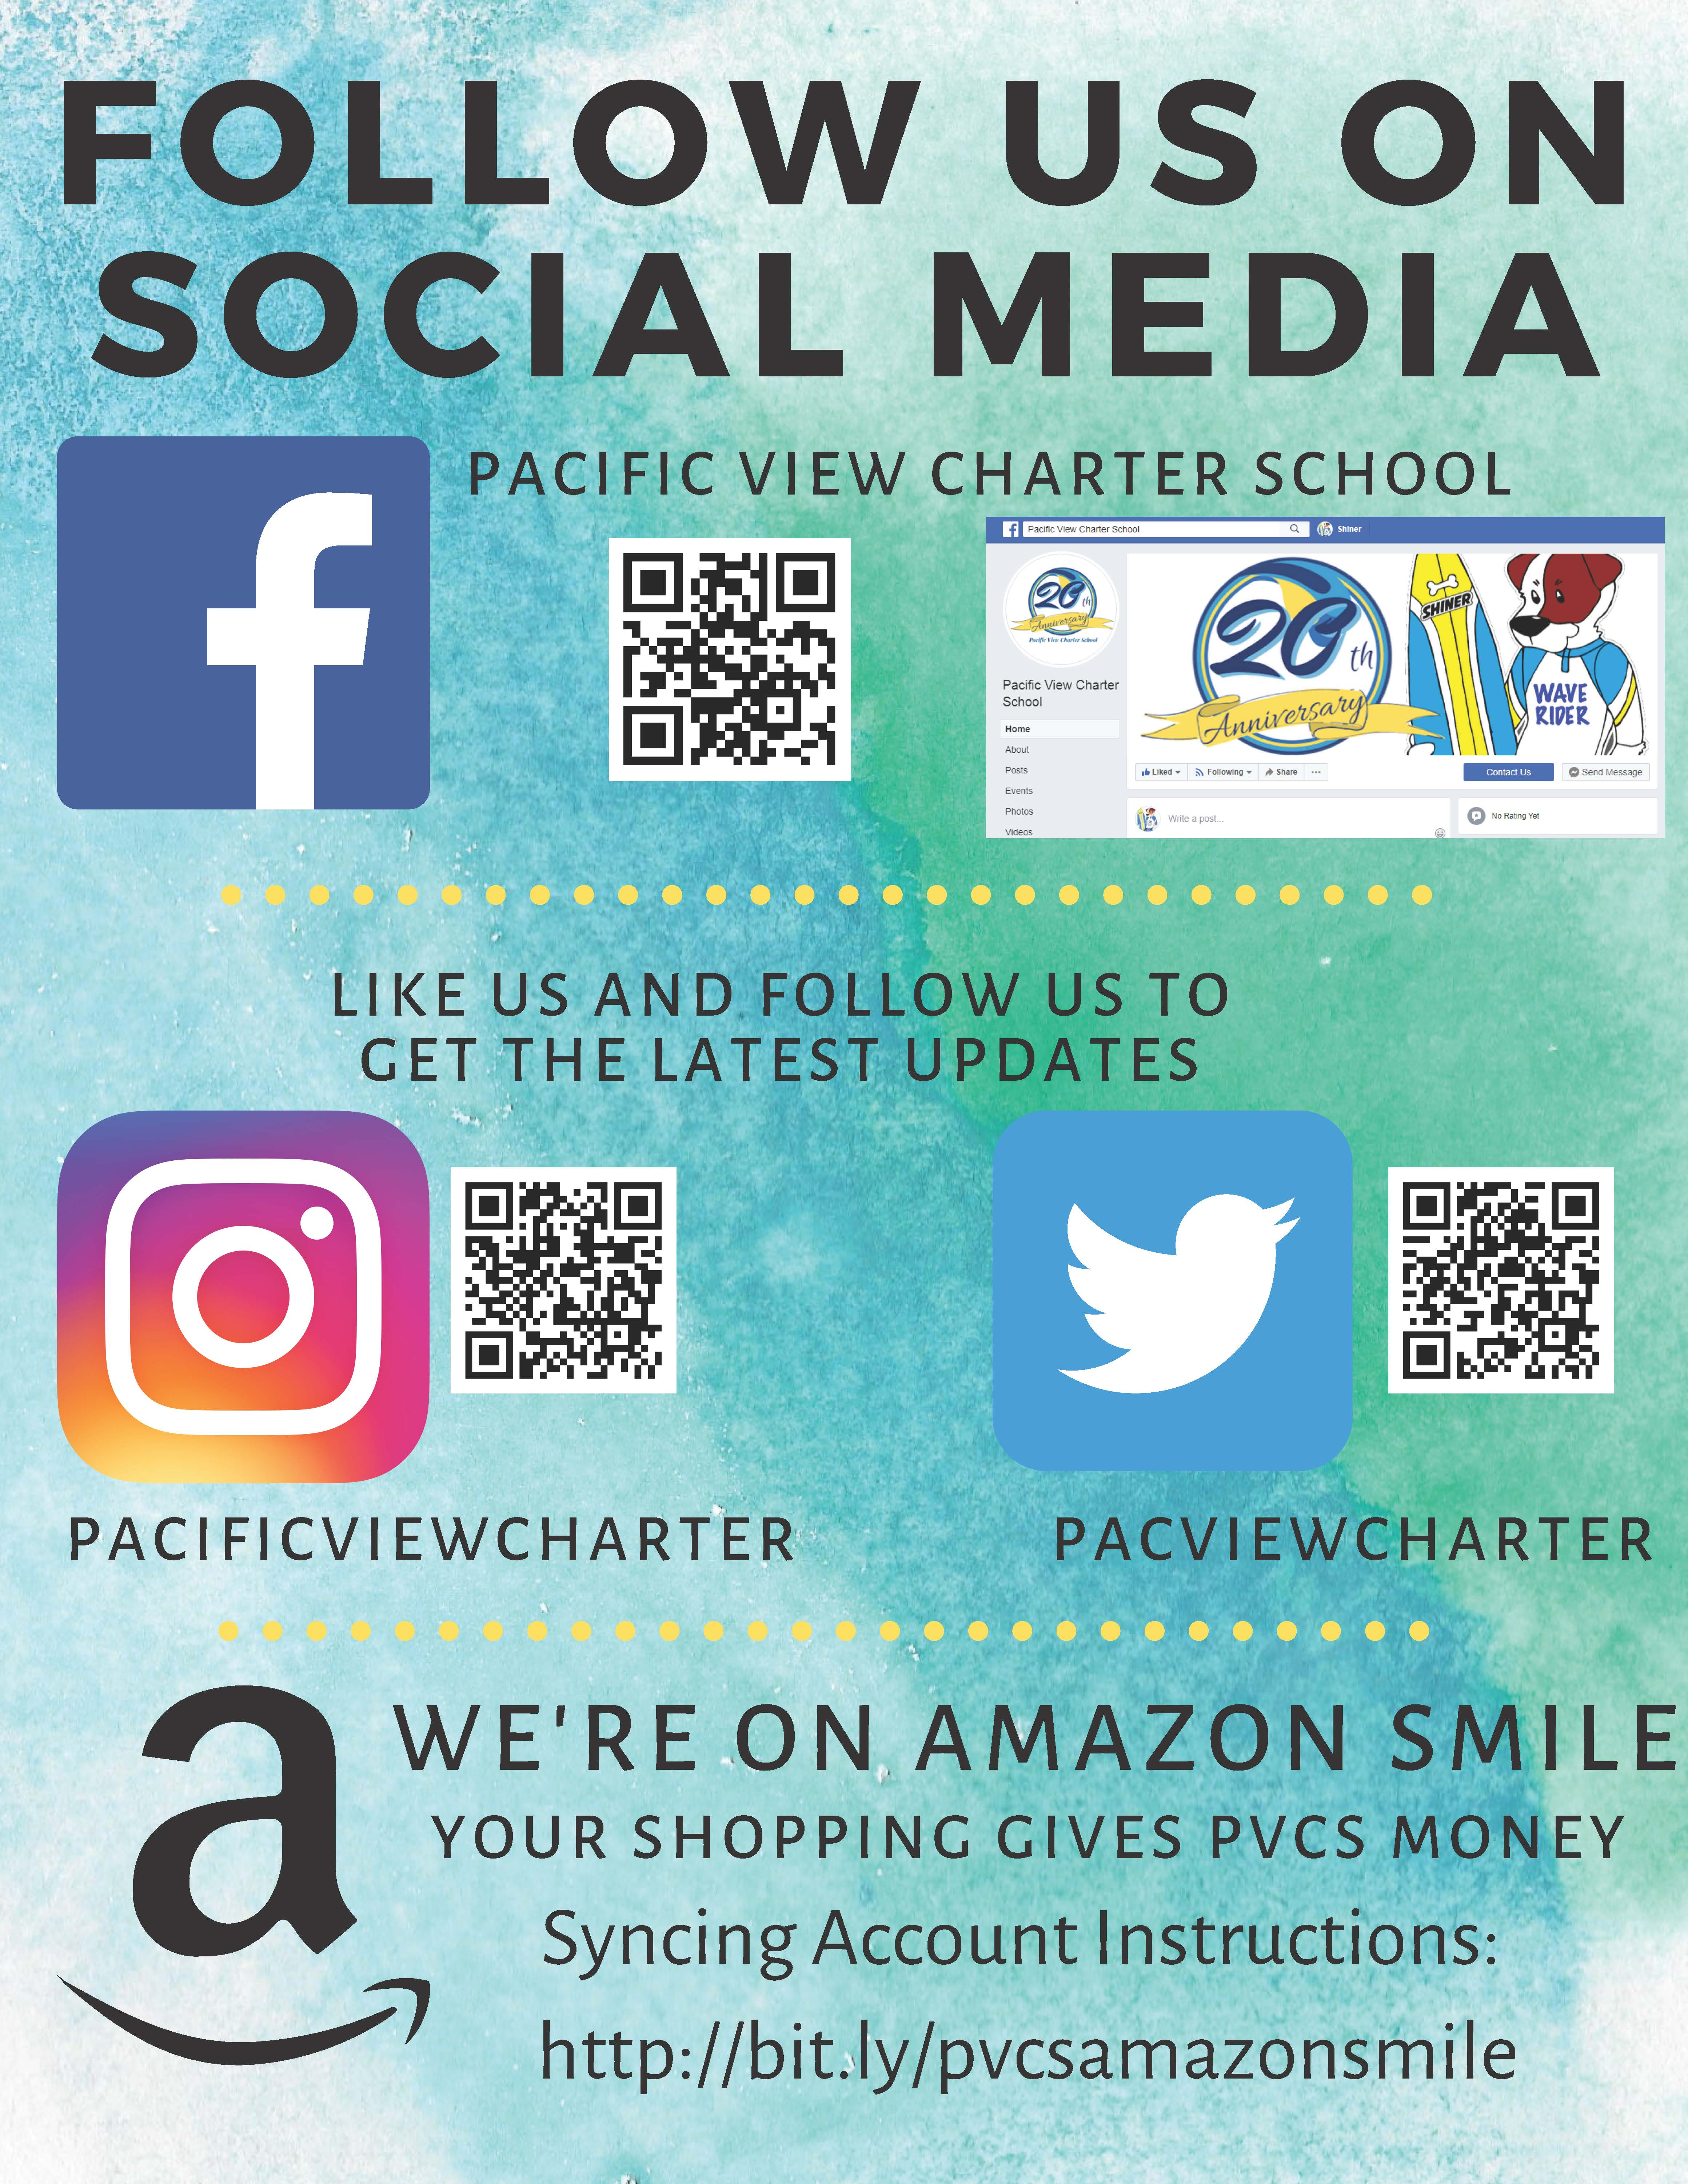 Flyer image of QR codes for Facebook, Instagram, twitter, and links for amazon.